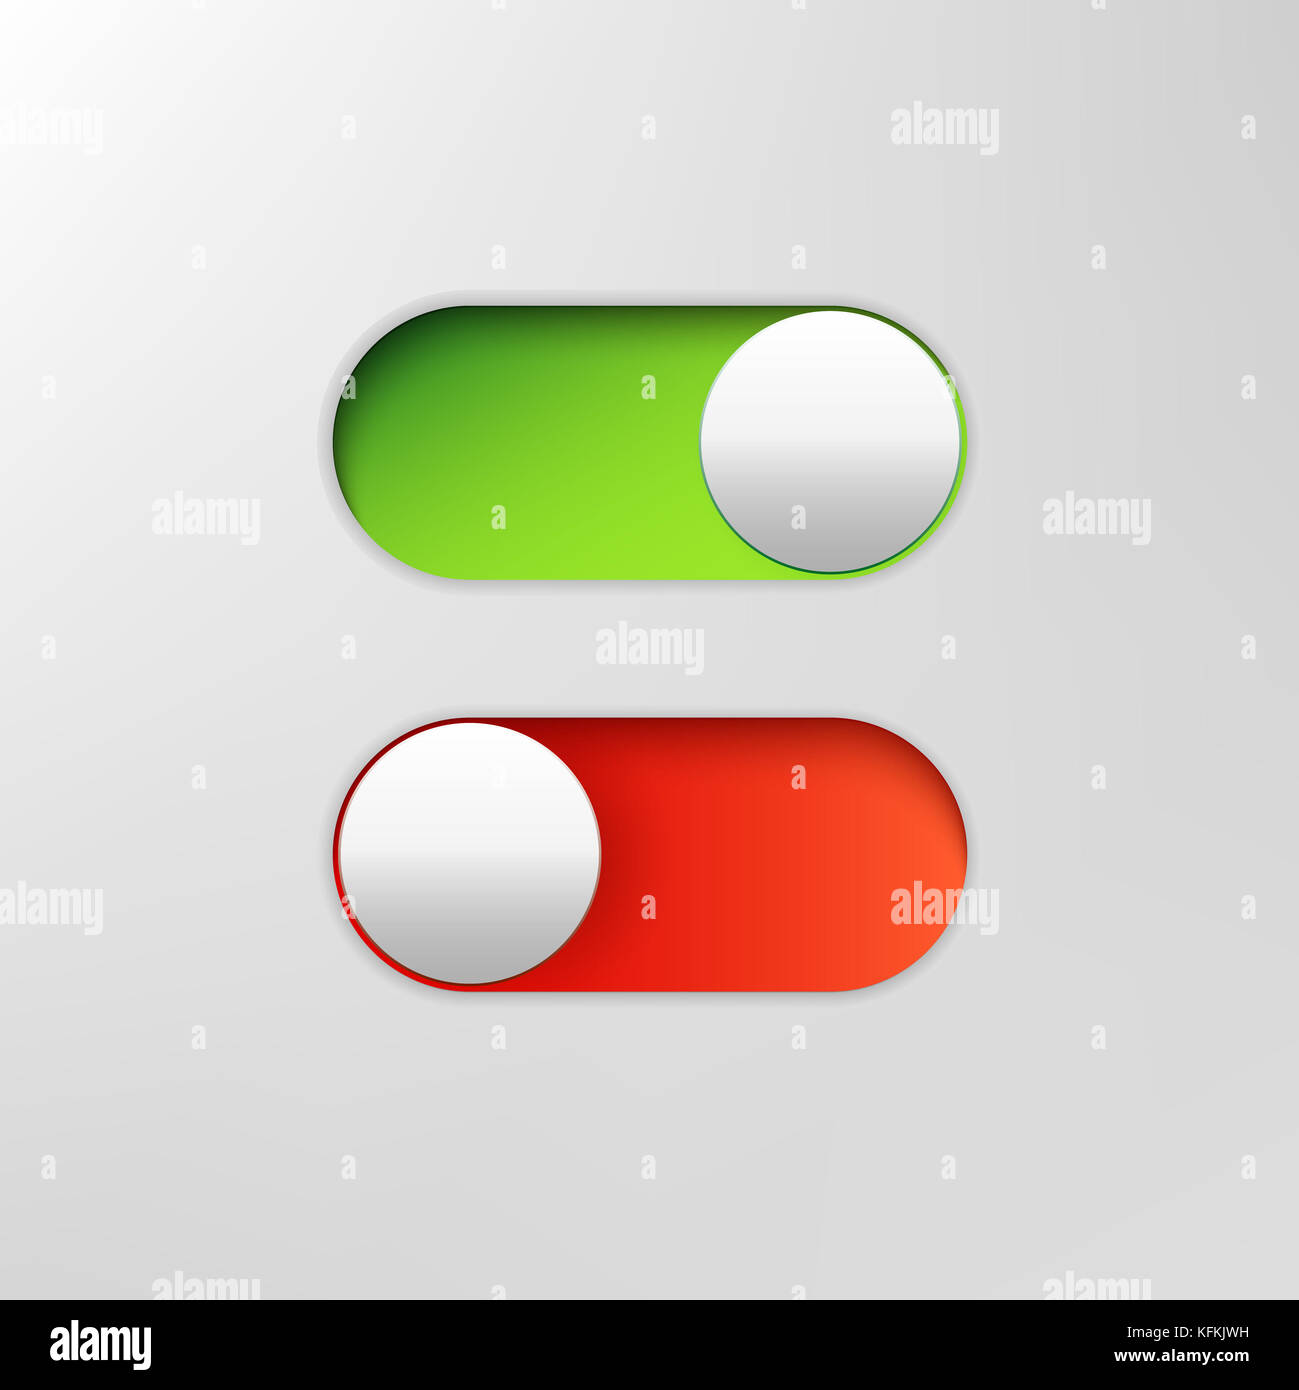 Phone switch icon. On off toggle for design applications. Phone slider bar. - Stock Image